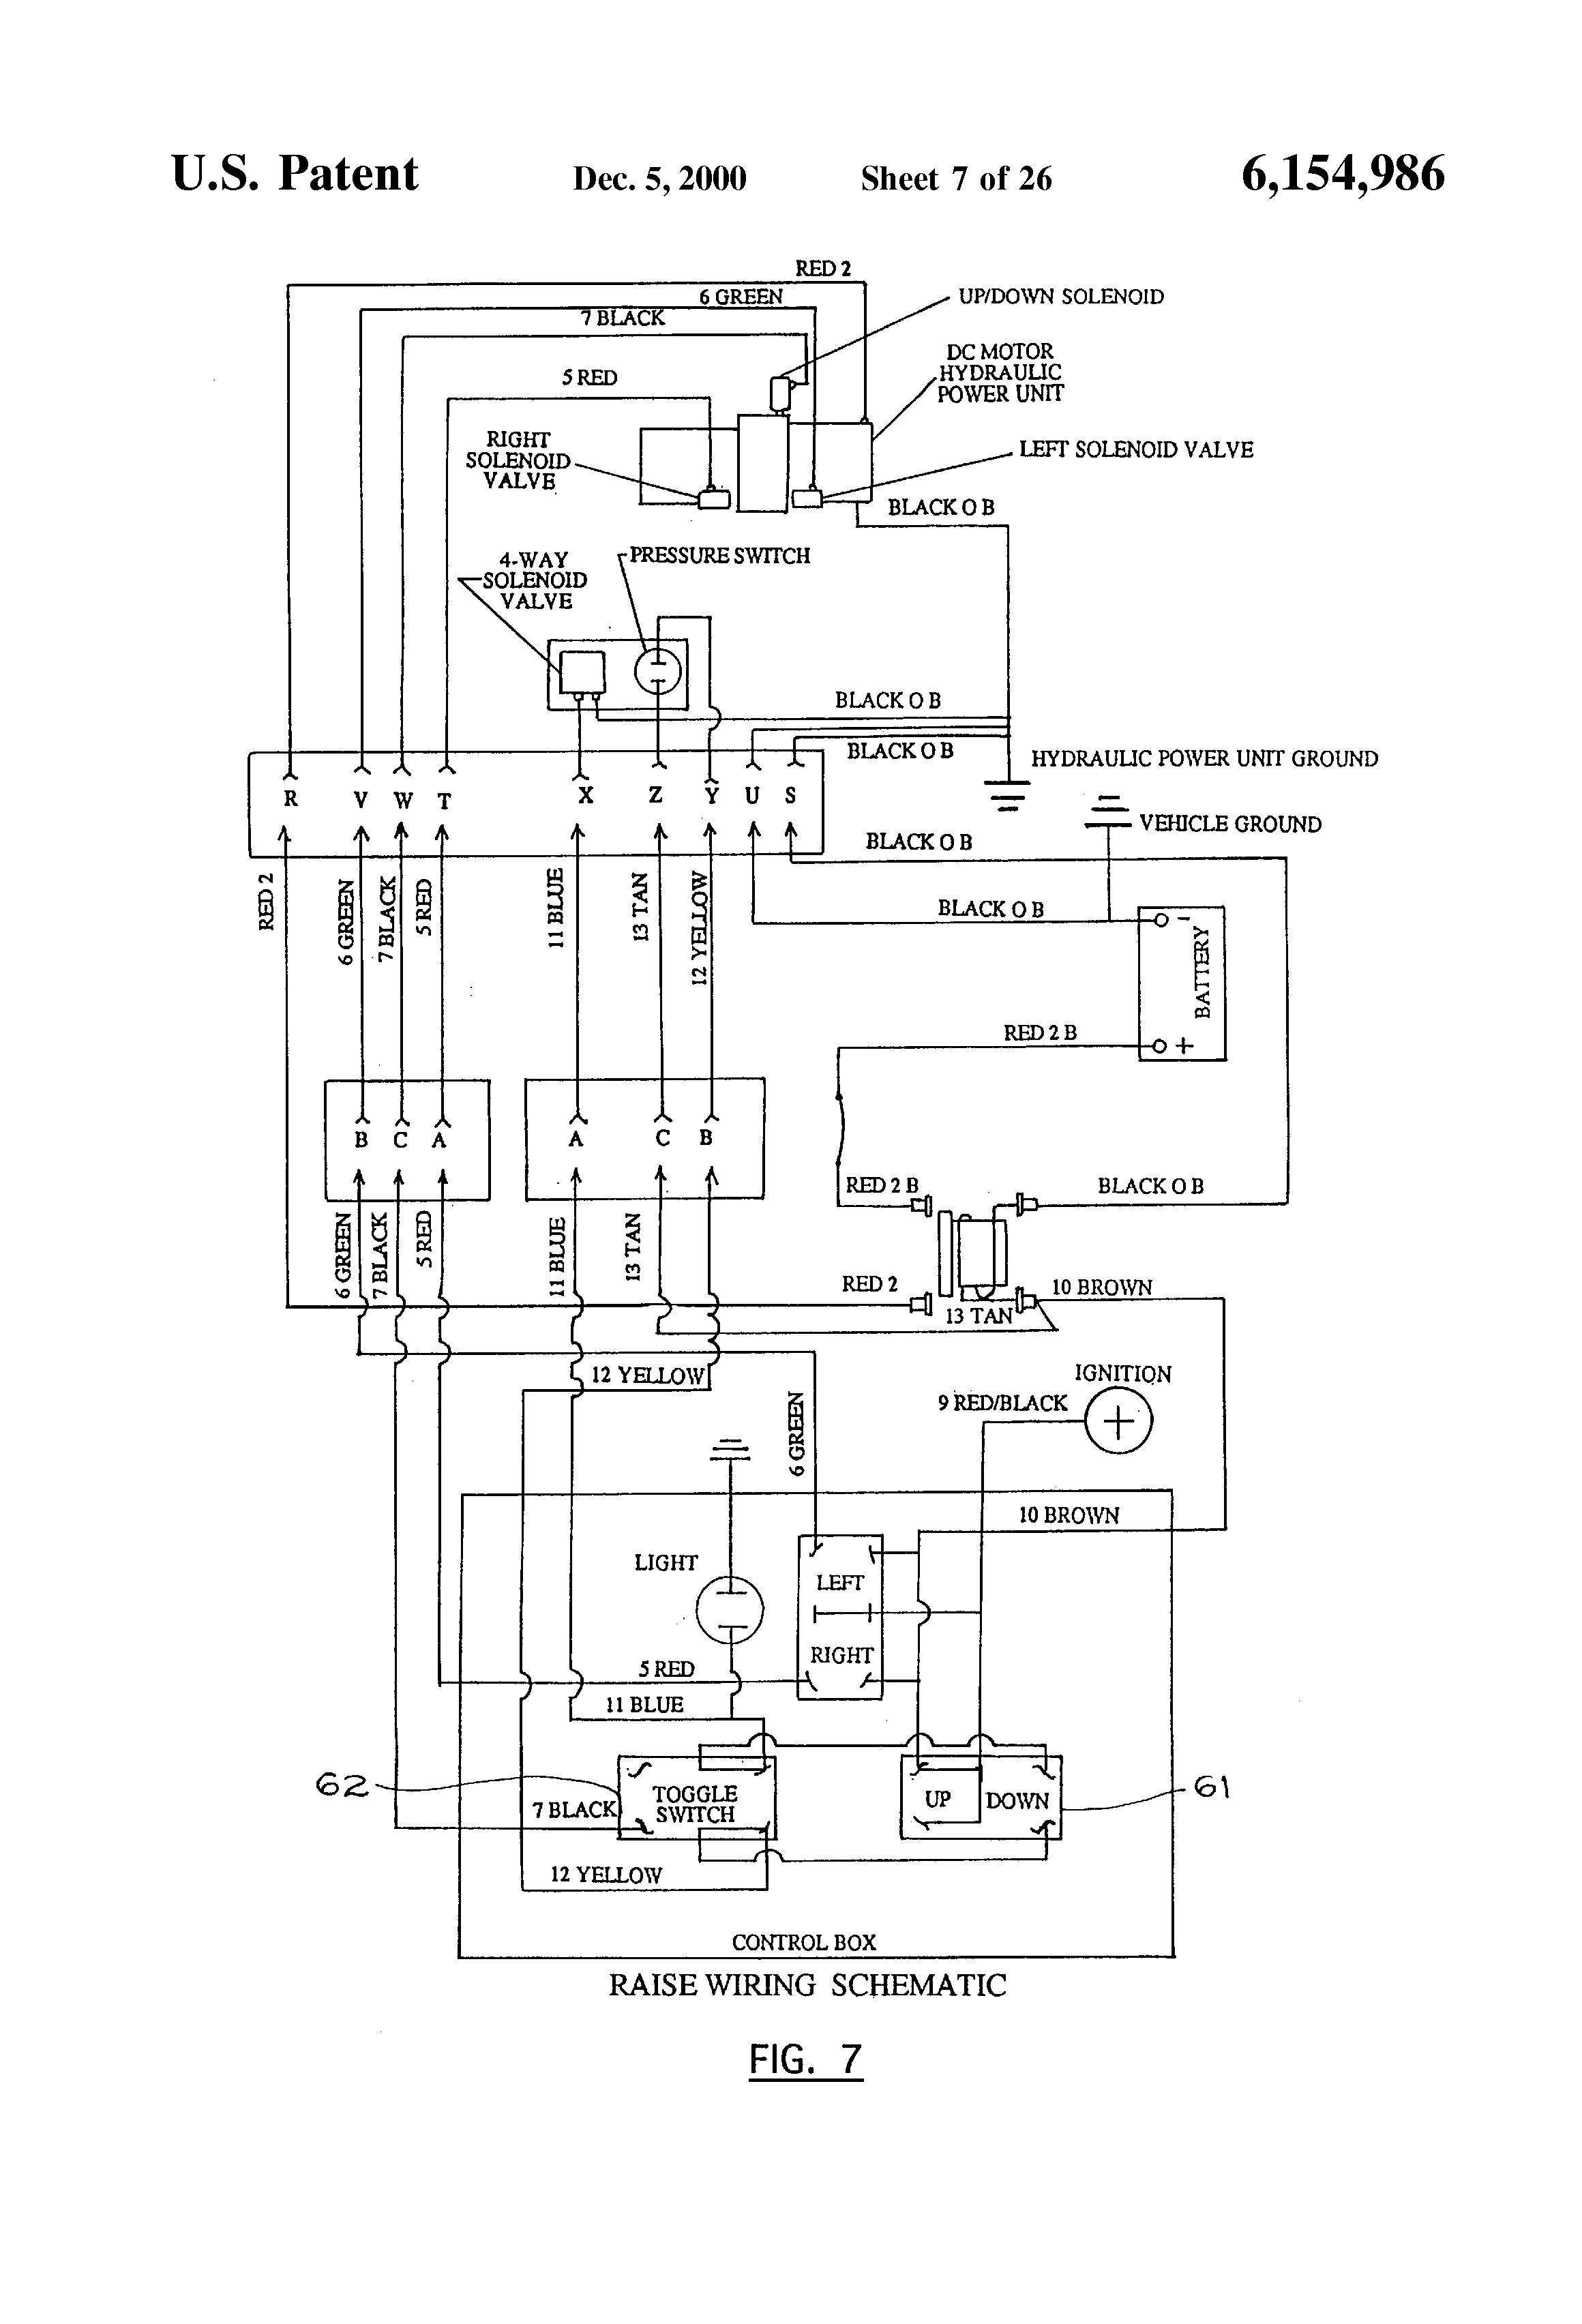 DIAGRAM] Blizzard Plow Wiring Diagram 1 500 FULL Version HD Quality 1 500 -  ABANGWIRING.PARMASOCIALHOUSE.IT  abangwiring.parmasocialhouse.it